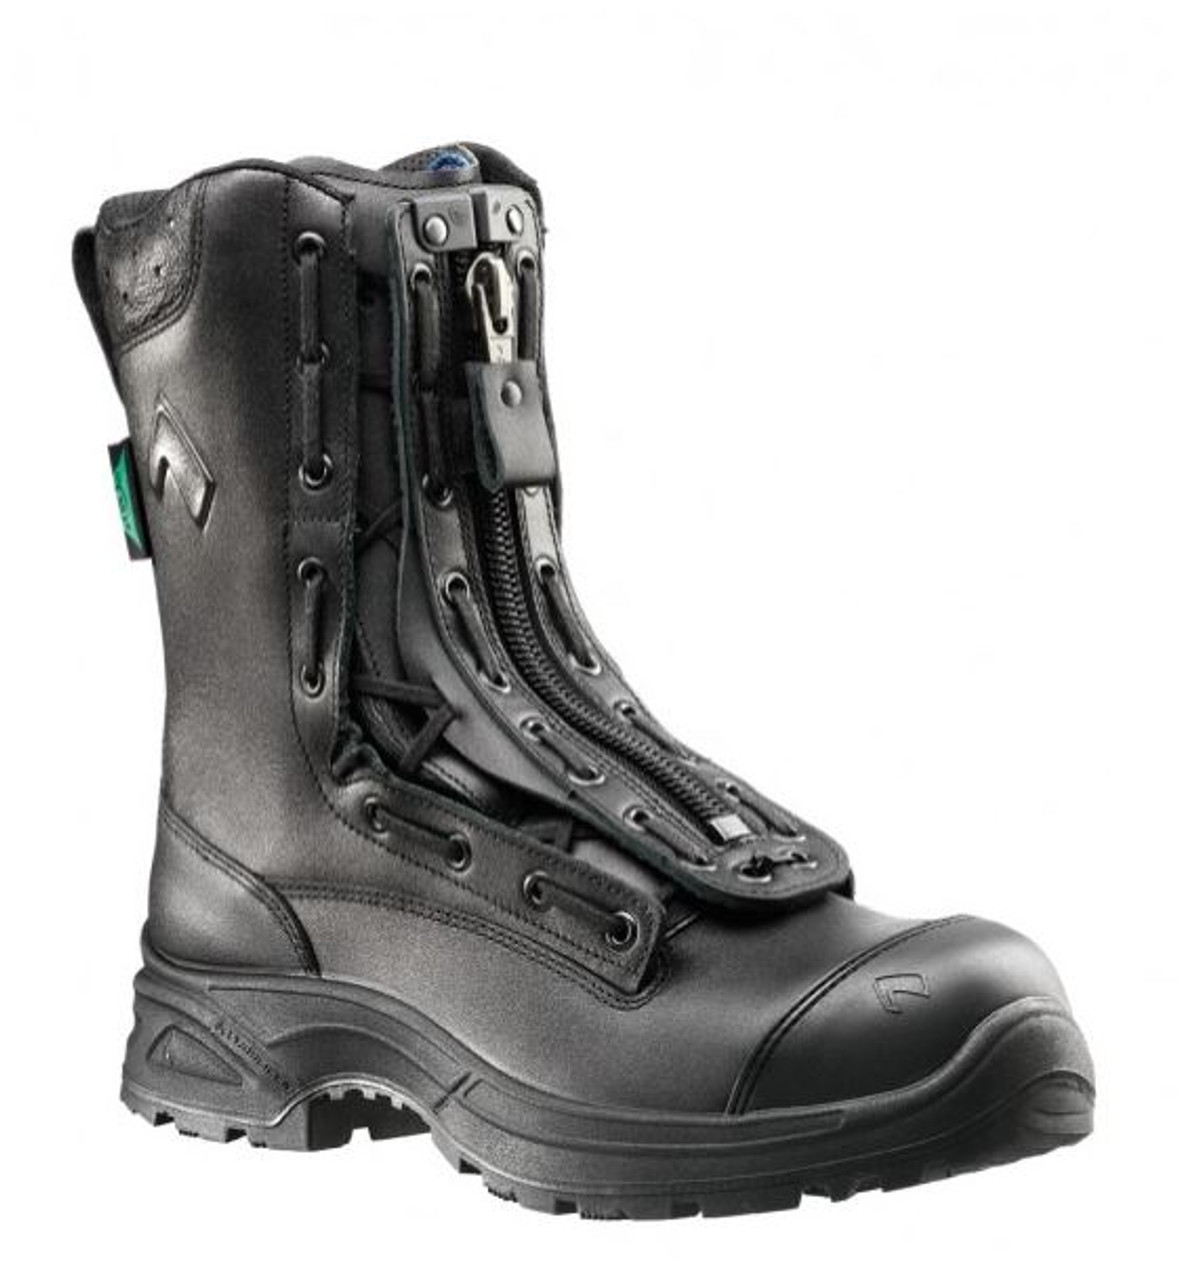 Haix Airpower XR1 Dual Certified Wildland EMS Station Boot